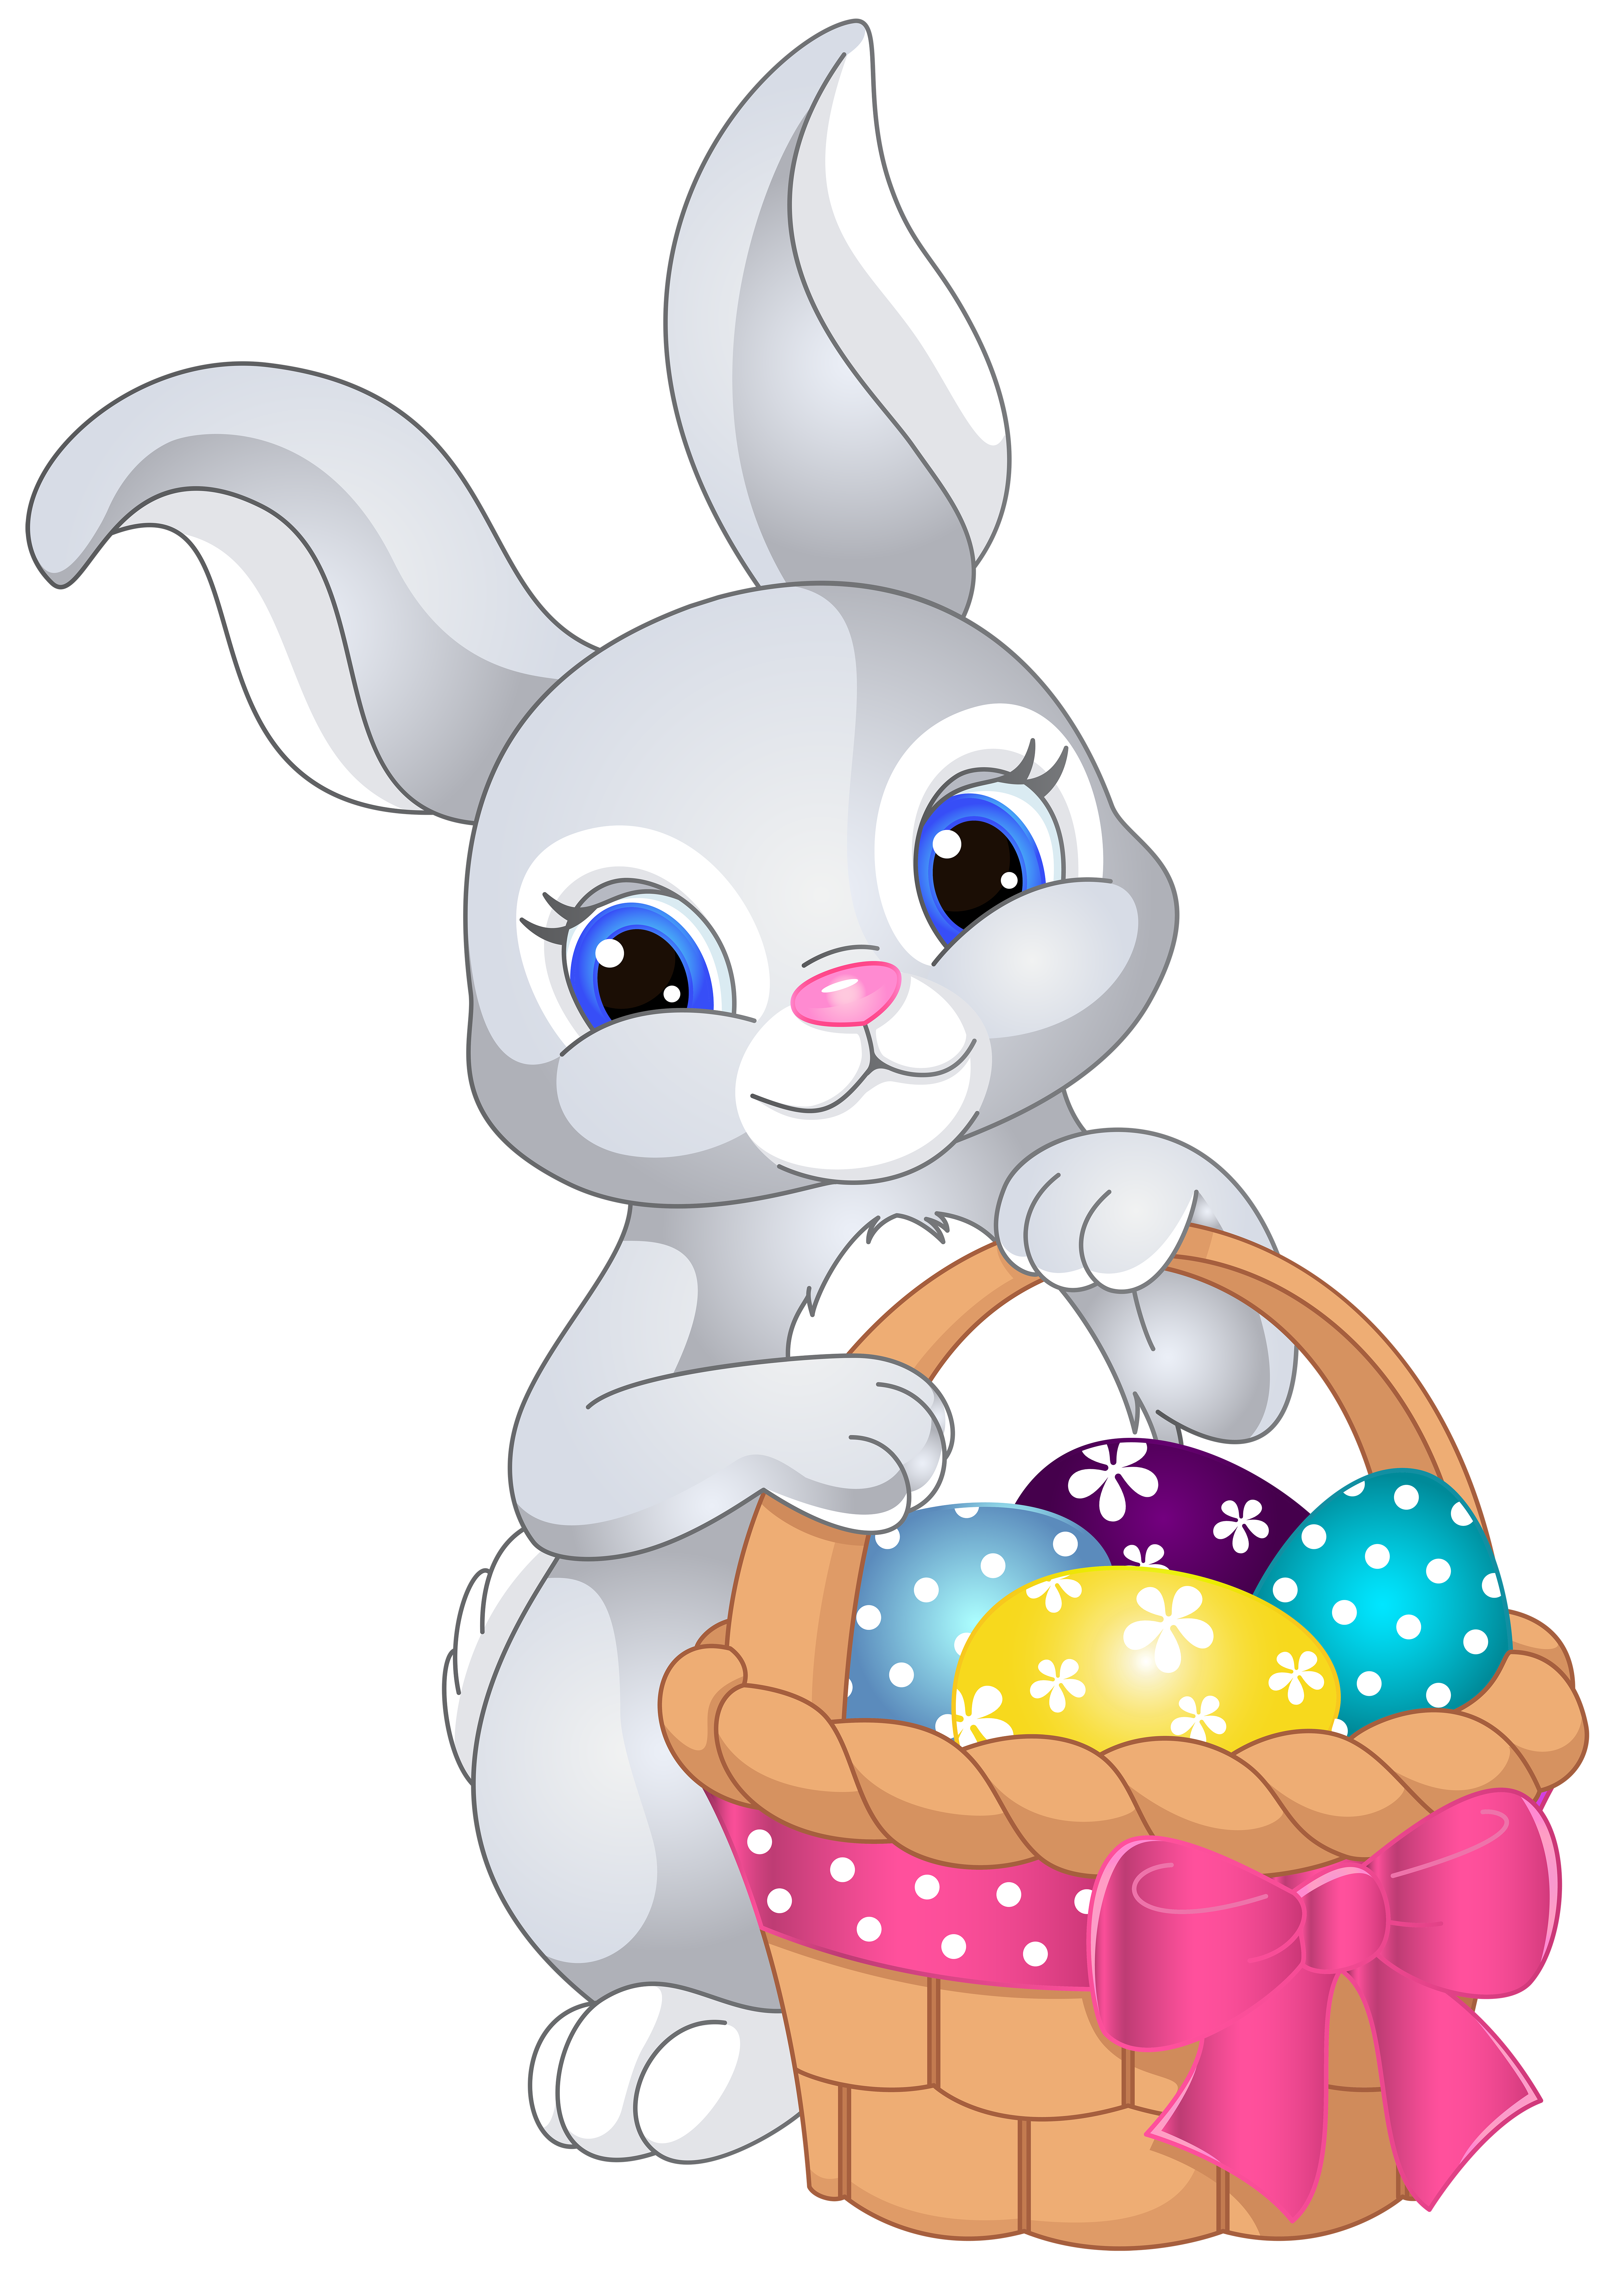 Easter Bunny with Egg Basket PNG Clip Art Image clipart freeuse stock